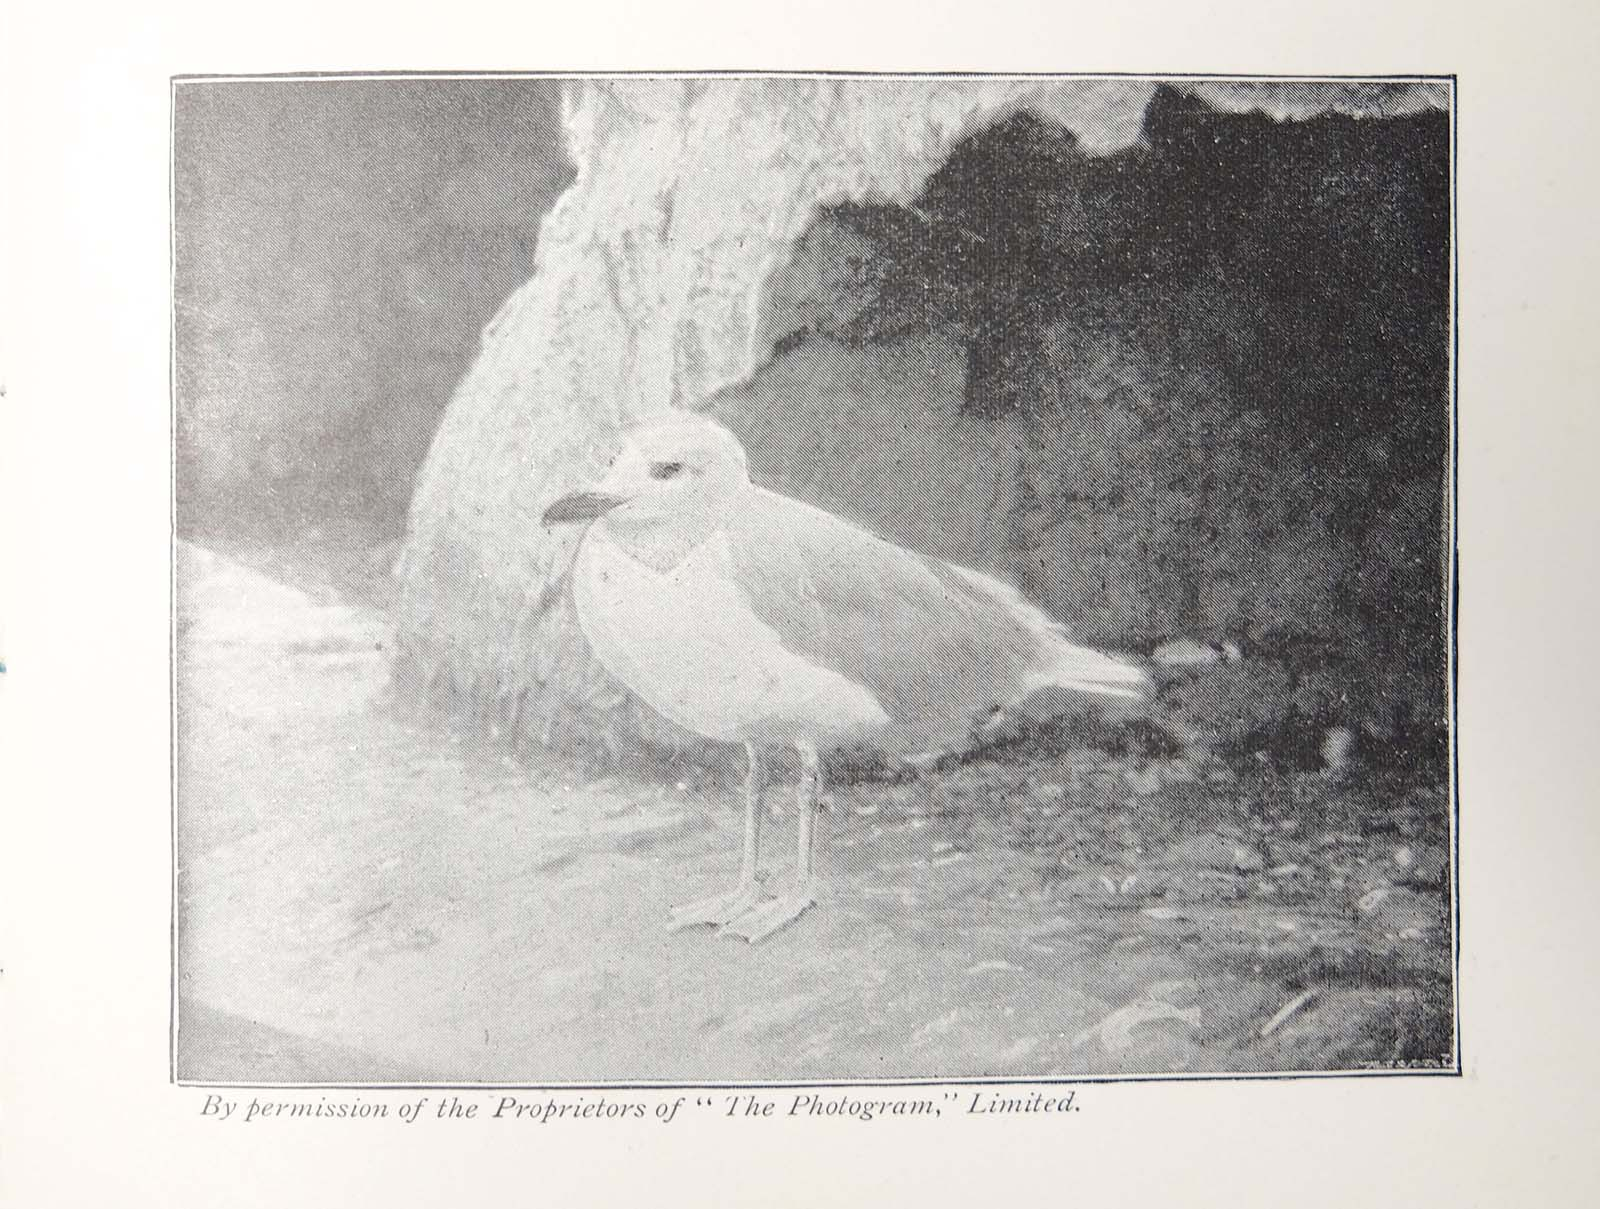 an old newspaper story with a picture of a seagull